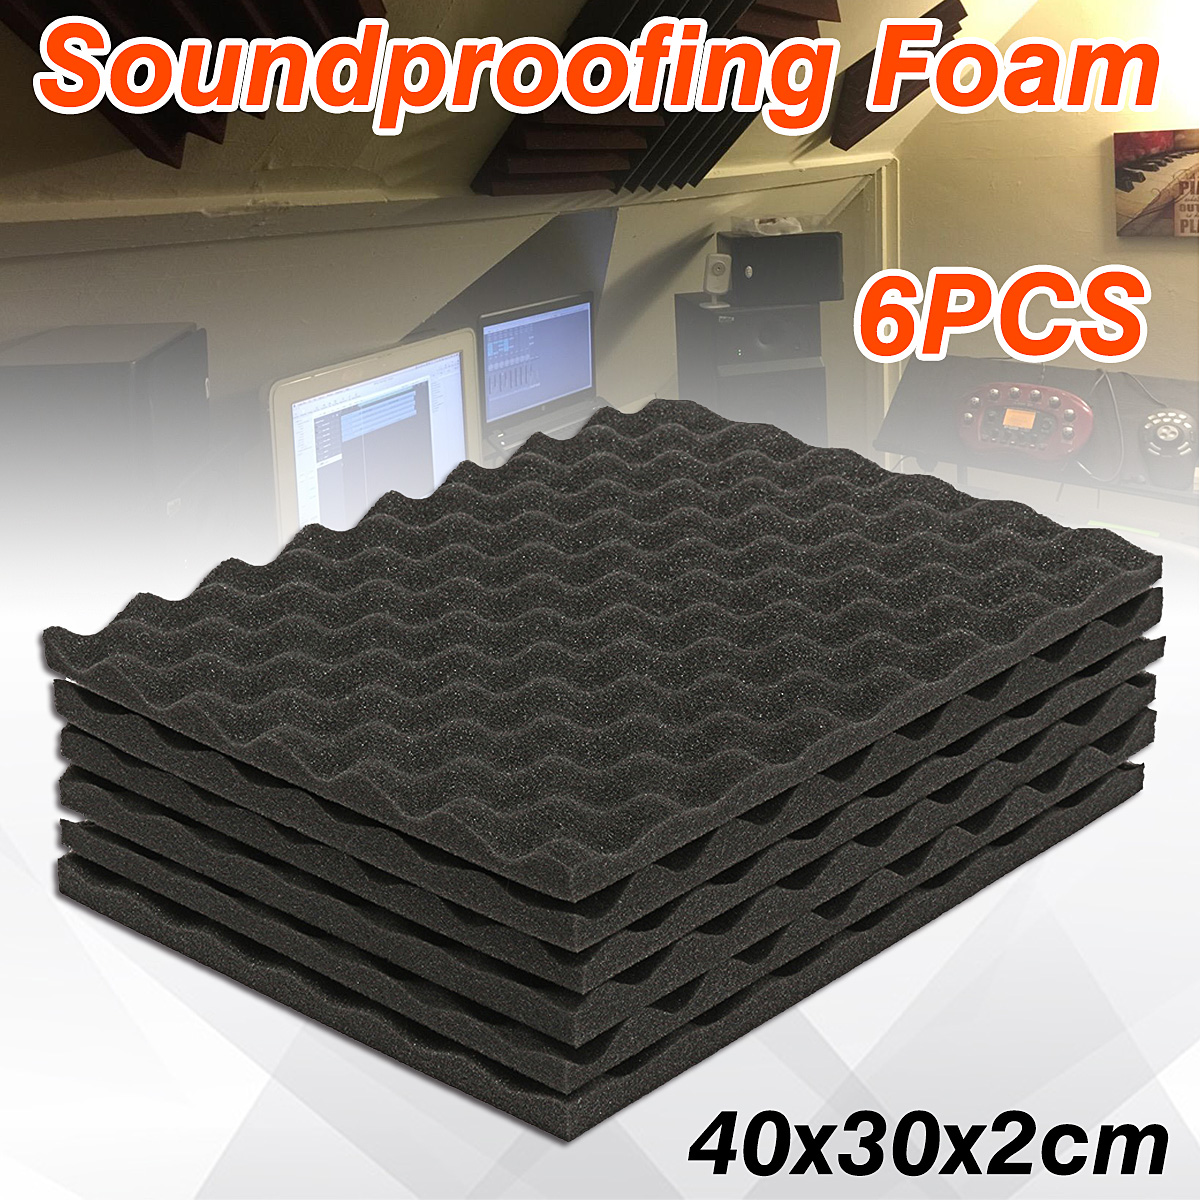 6Pcs 40x30x2cm Acoustic Foam Panels Sound Treatment Convoluted Egg Profile Wedge Acoustic Studio Sponge Soundproofing6Pcs 40x30x2cm Acoustic Foam Panels Sound Treatment Convoluted Egg Profile Wedge Acoustic Studio Sponge Soundproofing